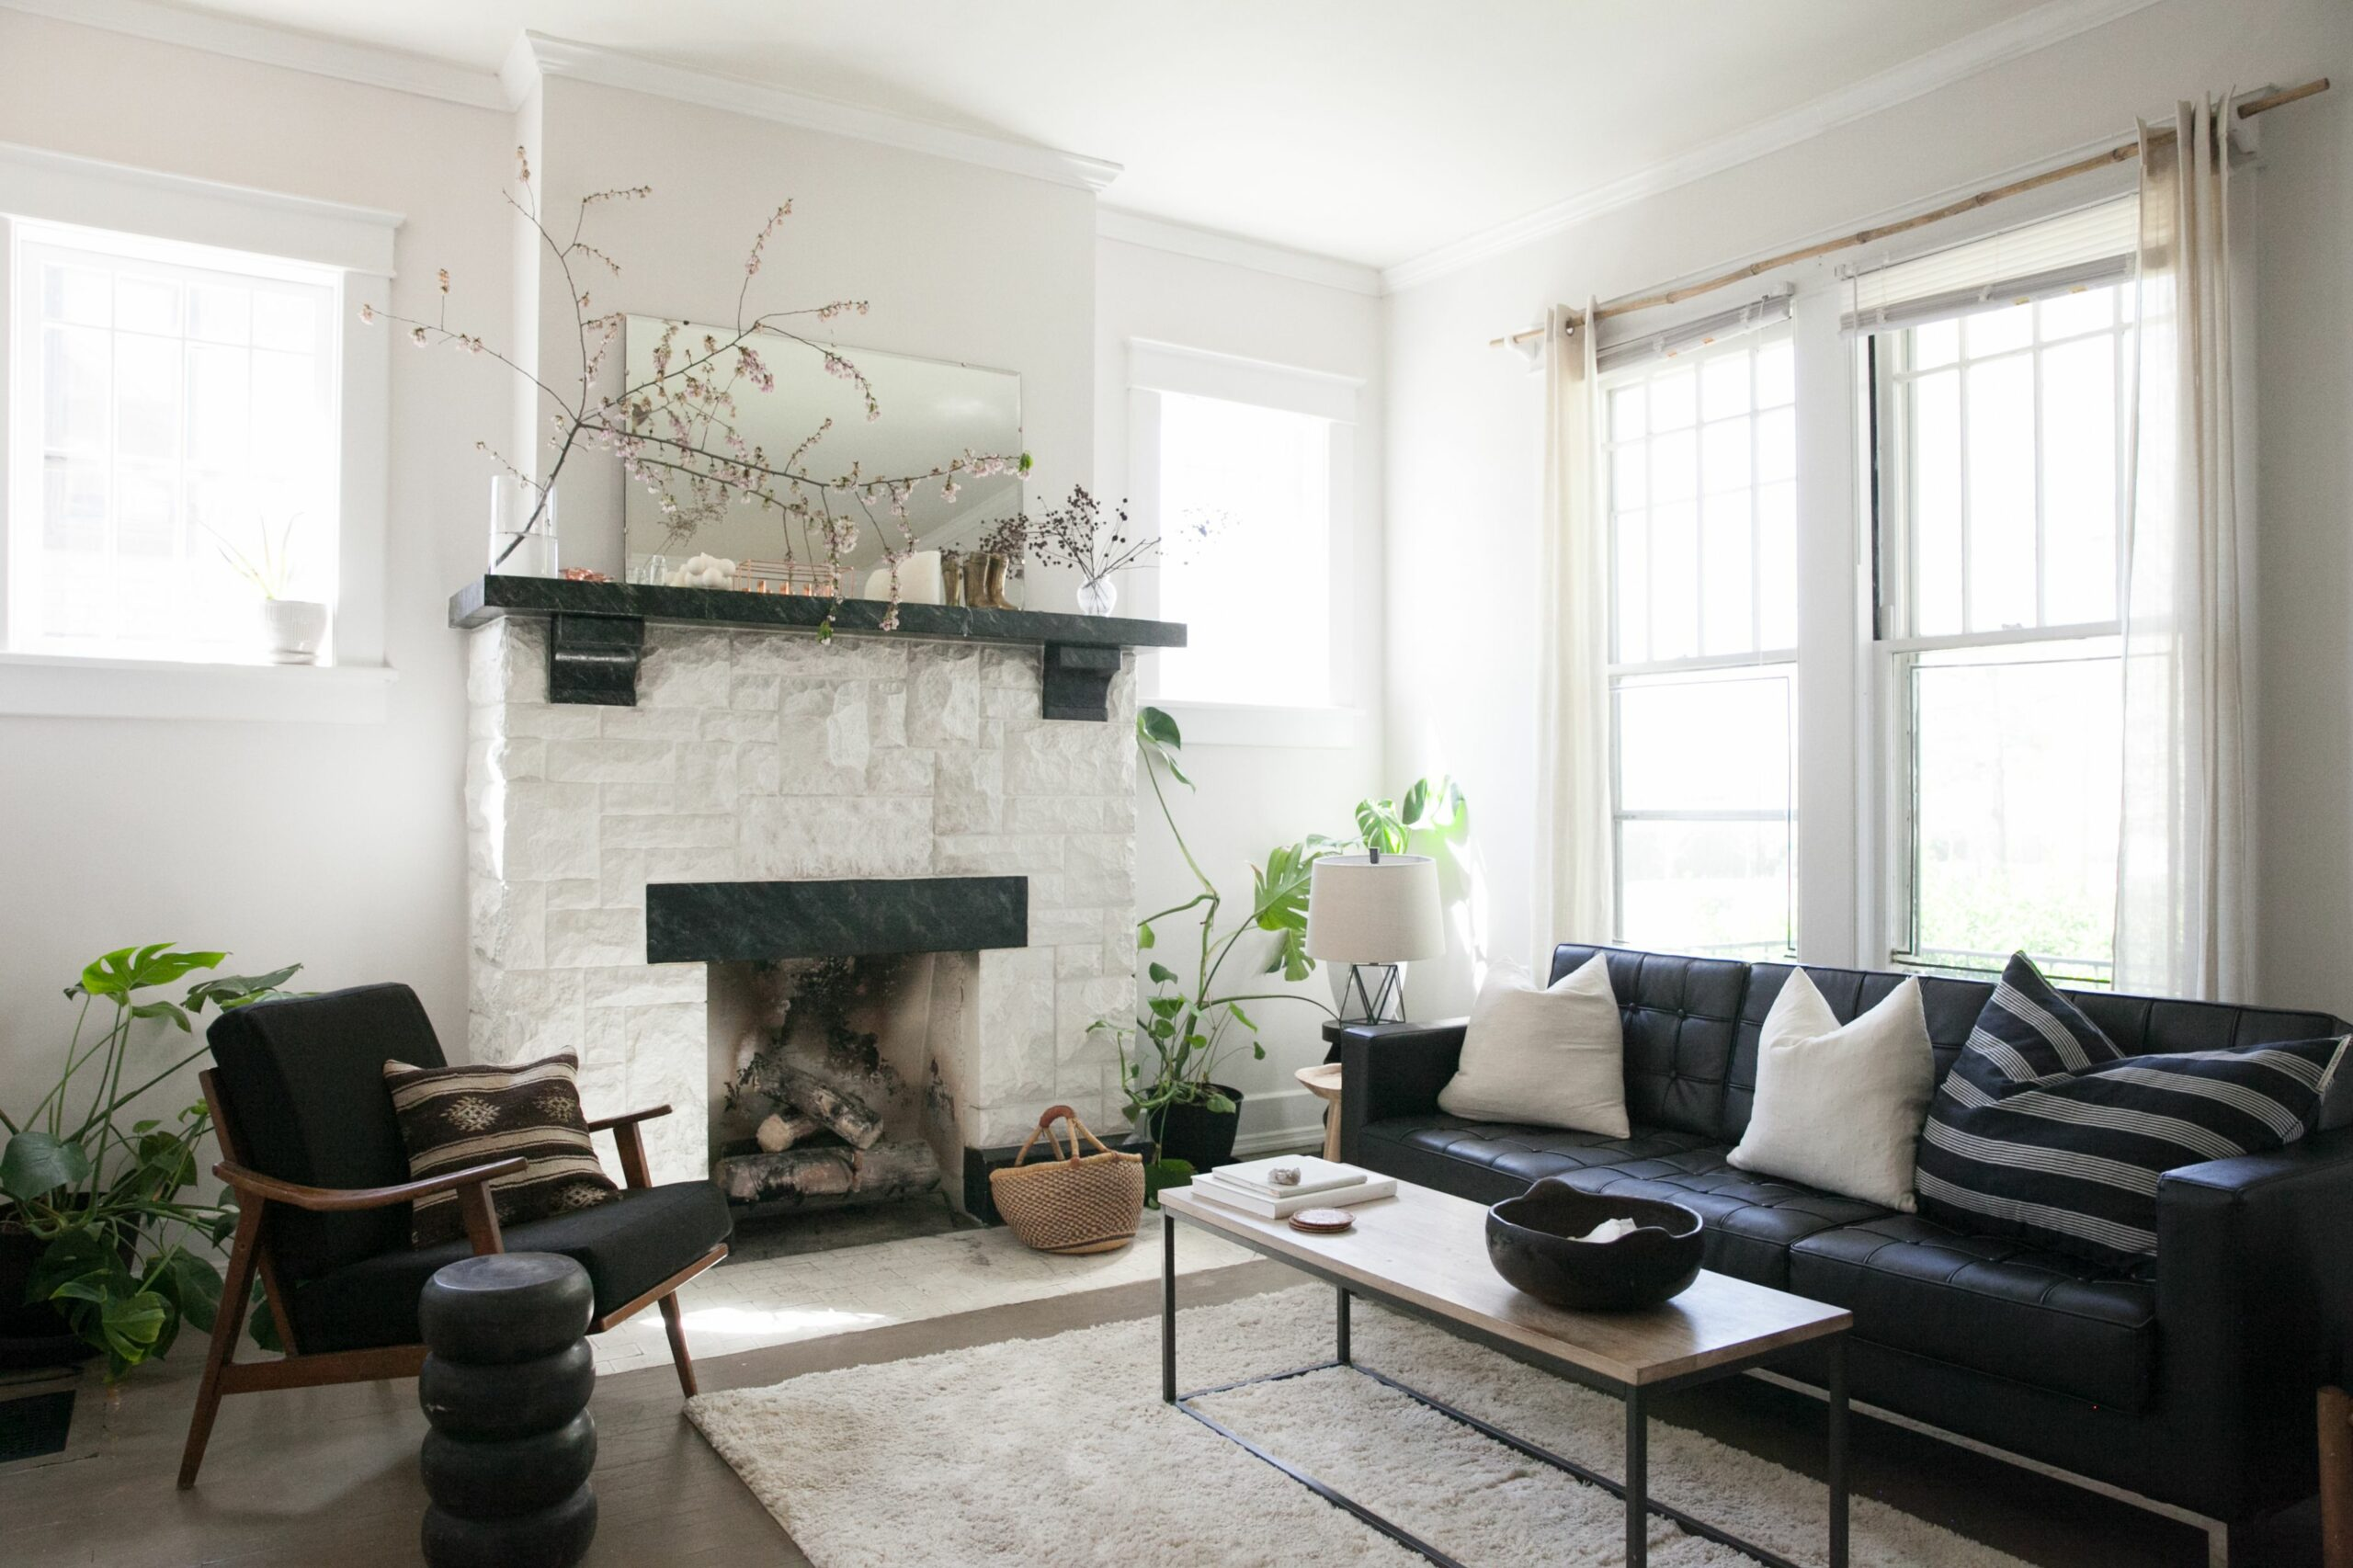 Living Room Layout Mistakes to Avoid While Decorating | Apartment ..